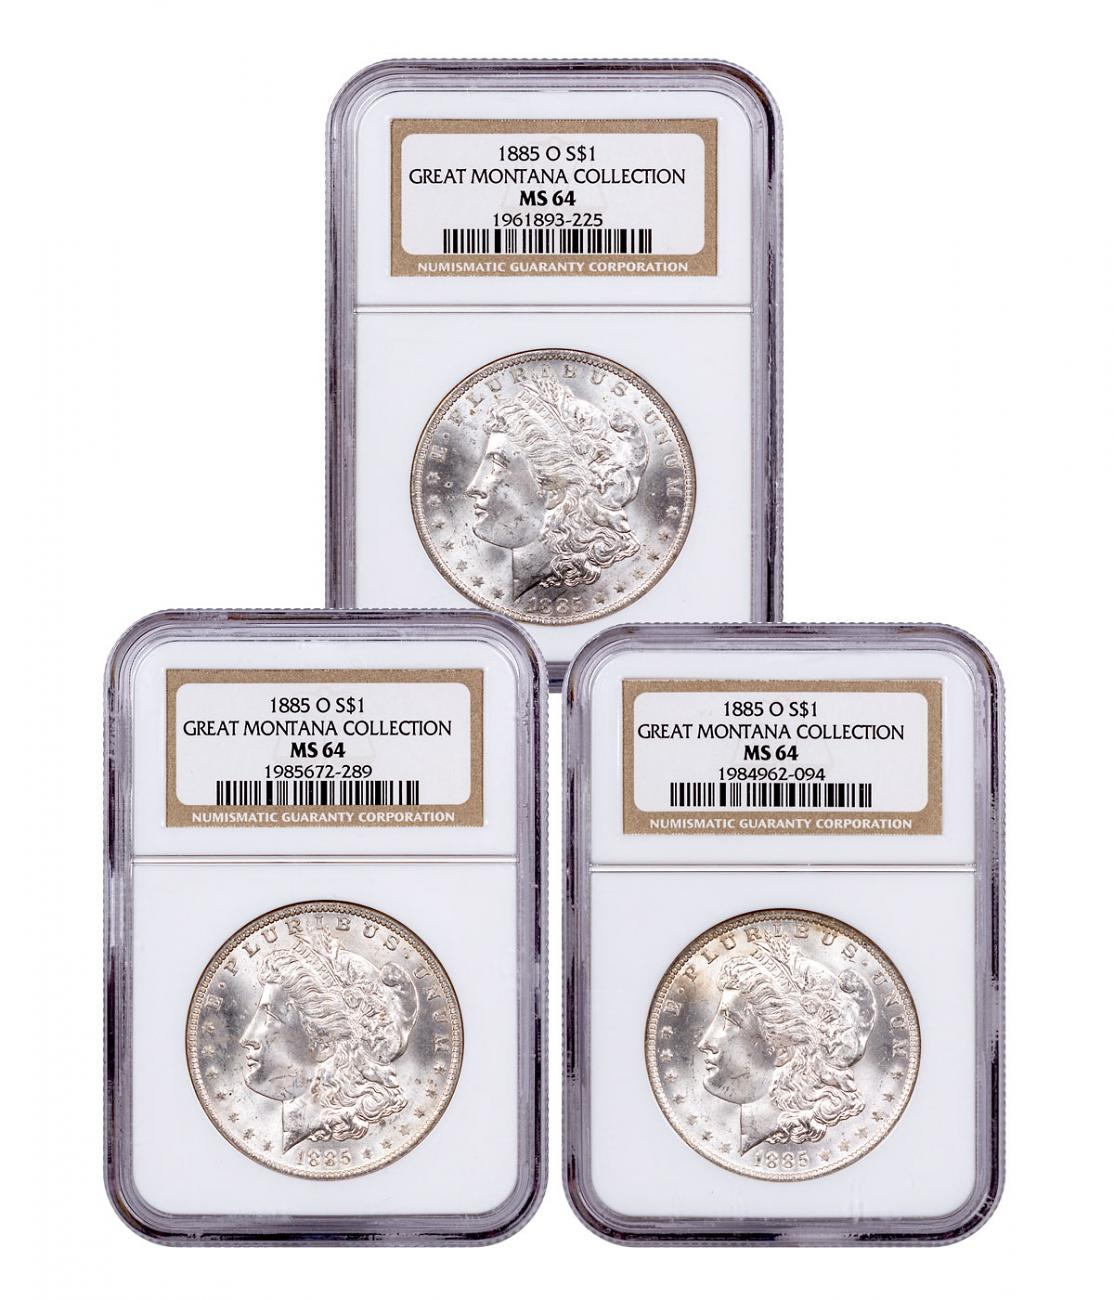 3-Coin Set - 1885-O Morgan Silver Dollar From the Great Montana Collection NGC MS64 Toned CPCR 3225